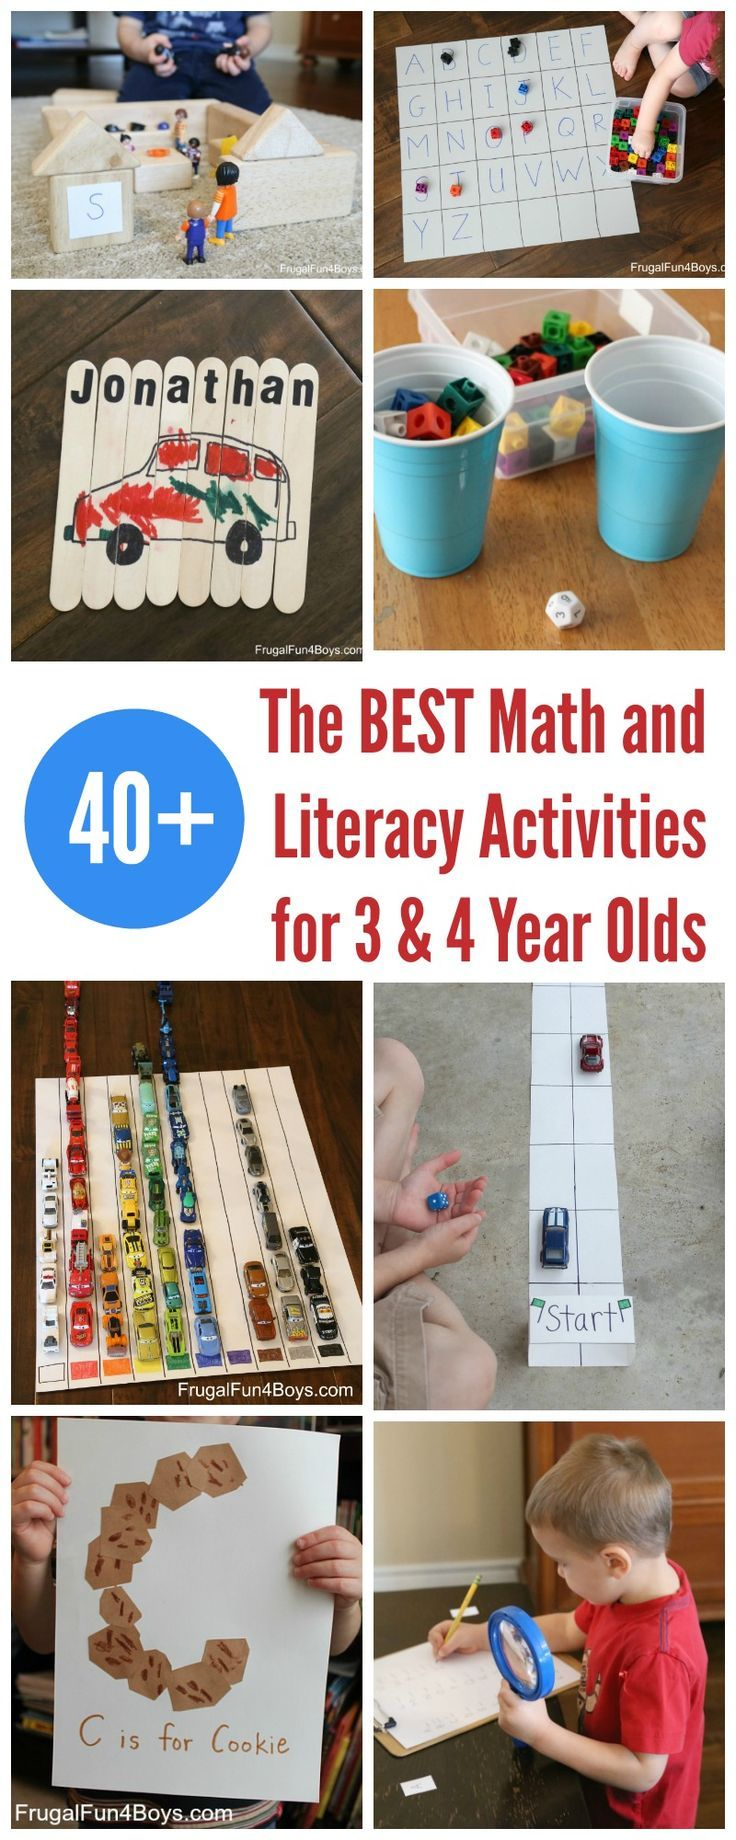 Here is a huge collection of our favorite math and literacy learning activities for preschoolers (3 and 4 year olds).  So many ideas for hands-on learning and play! Literacy Activities Go on a Detective Alphabet Hunt – Hunt for letters with a magnifying glass, and then check them off on your list. Alphabet Bingo Game …